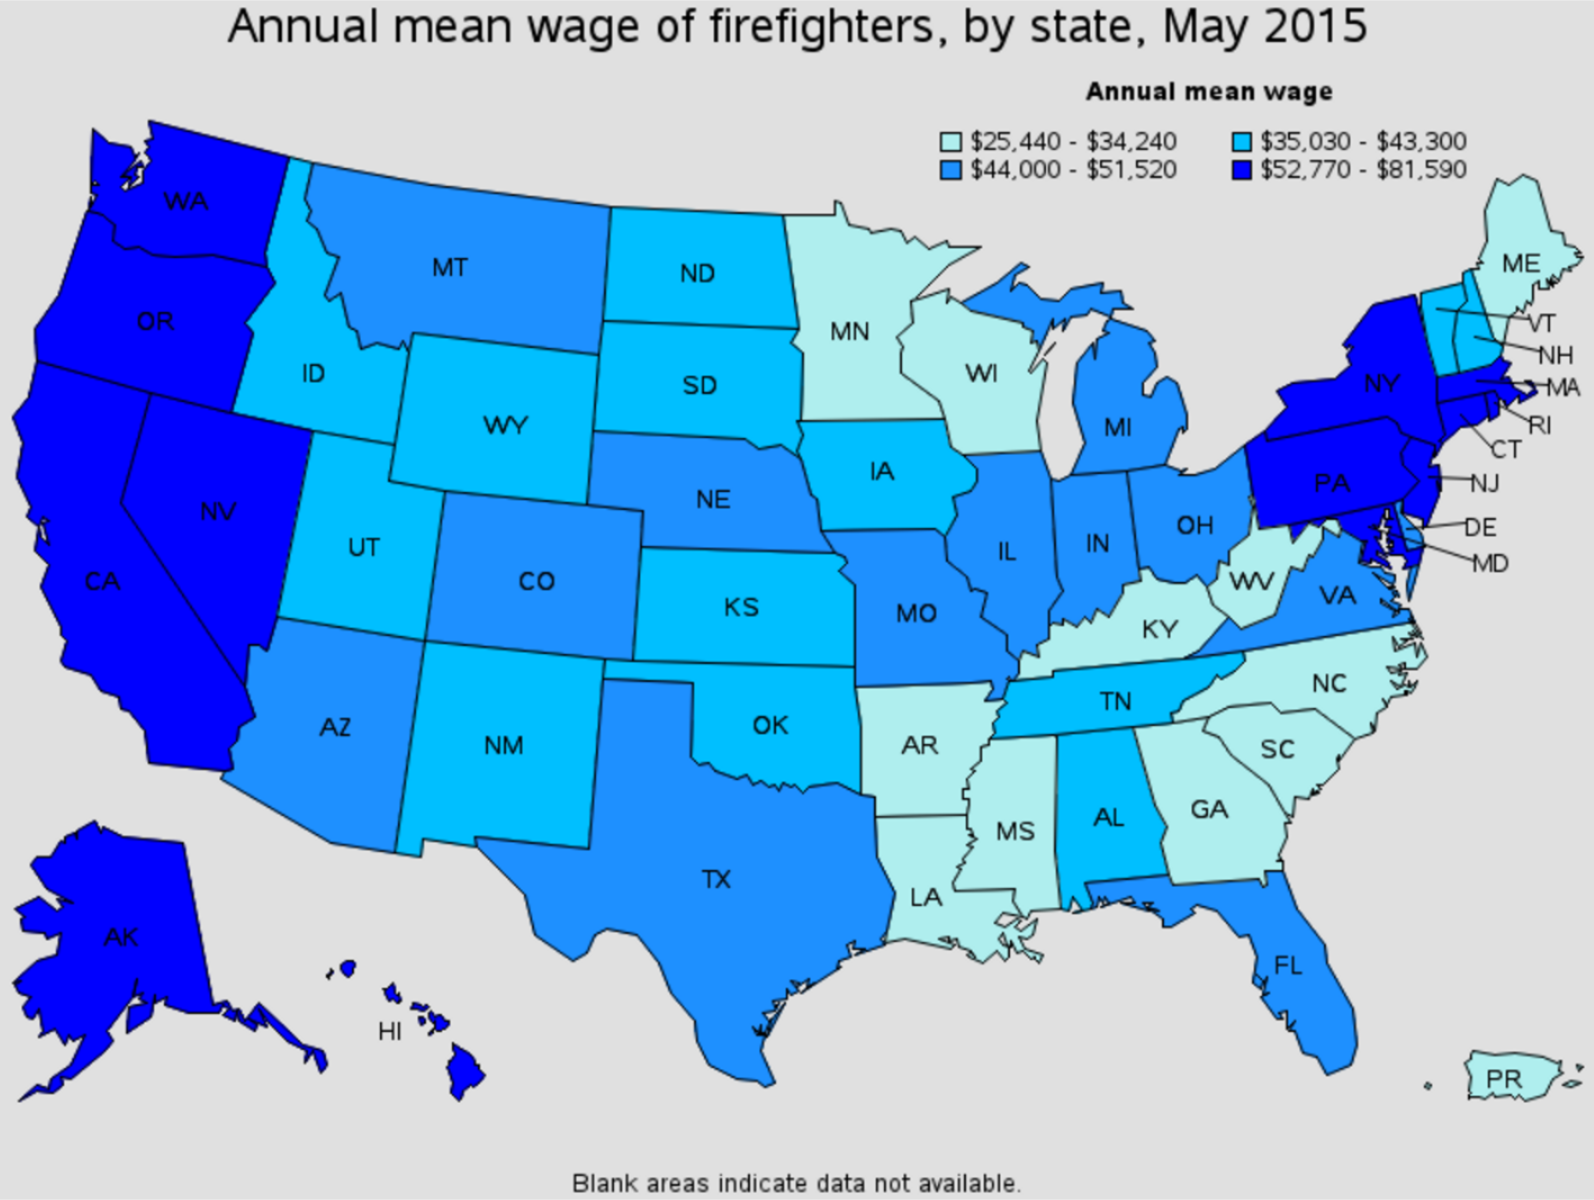 firefighter average salary by state Young America Minnesota